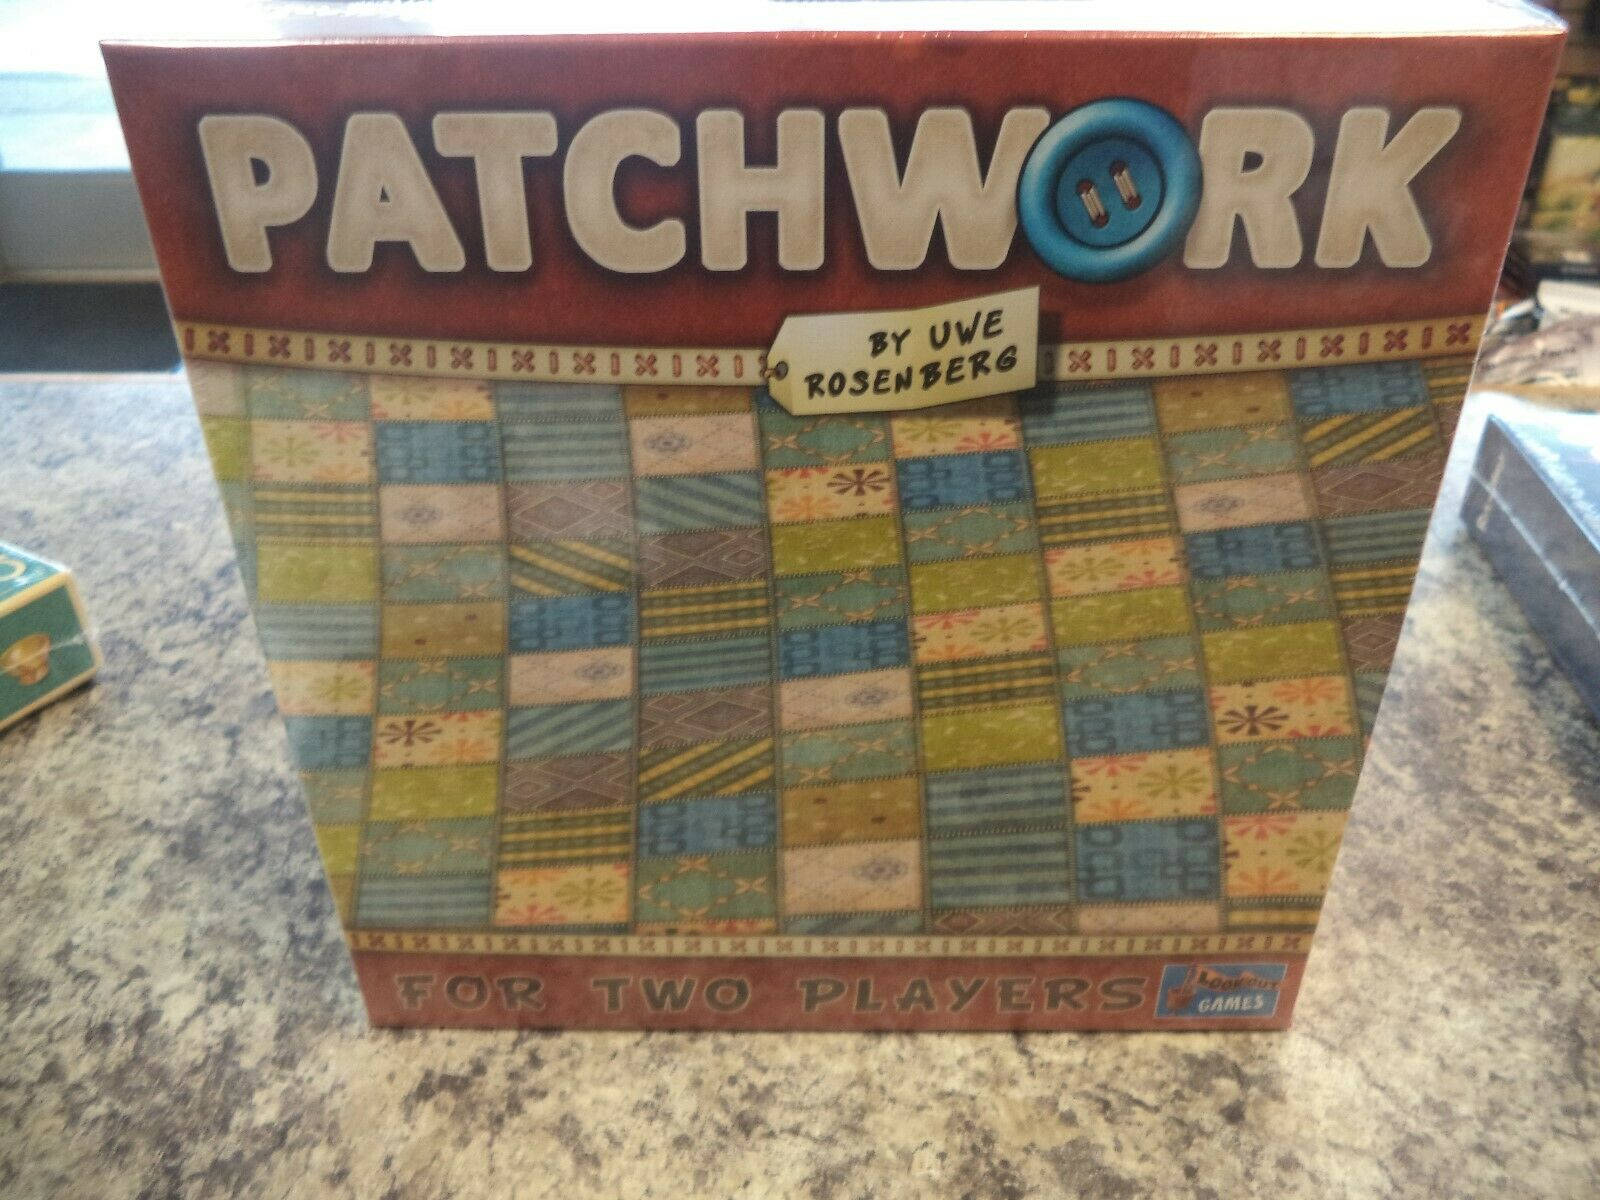 Patchwork - Lookout Games Uwe pinknberg Board Game New